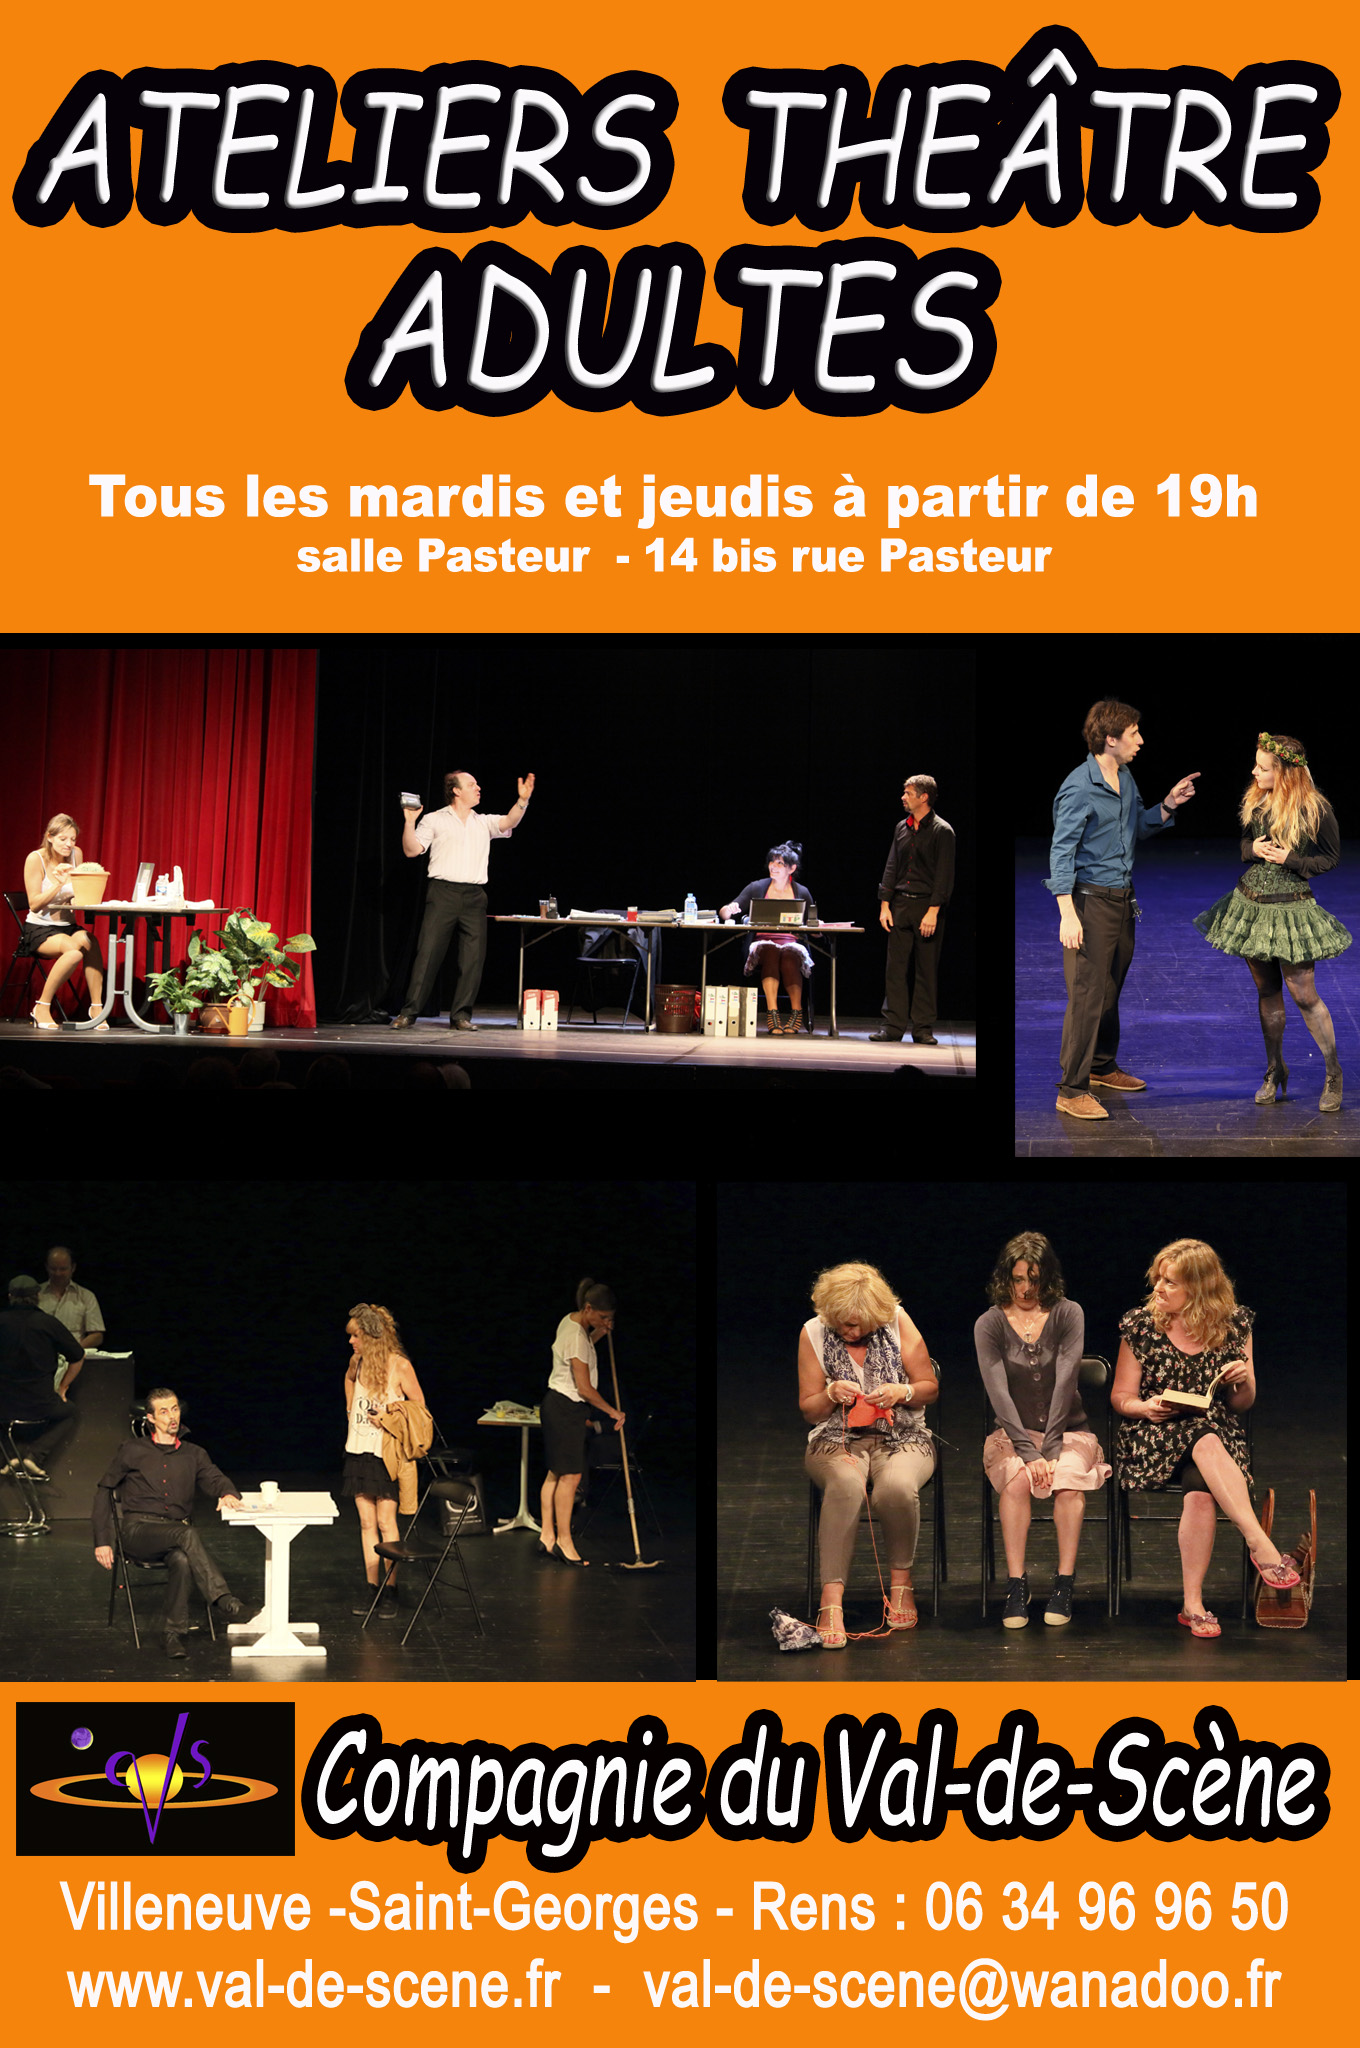 Affiche THEATRE ADULTES 2015.jpg